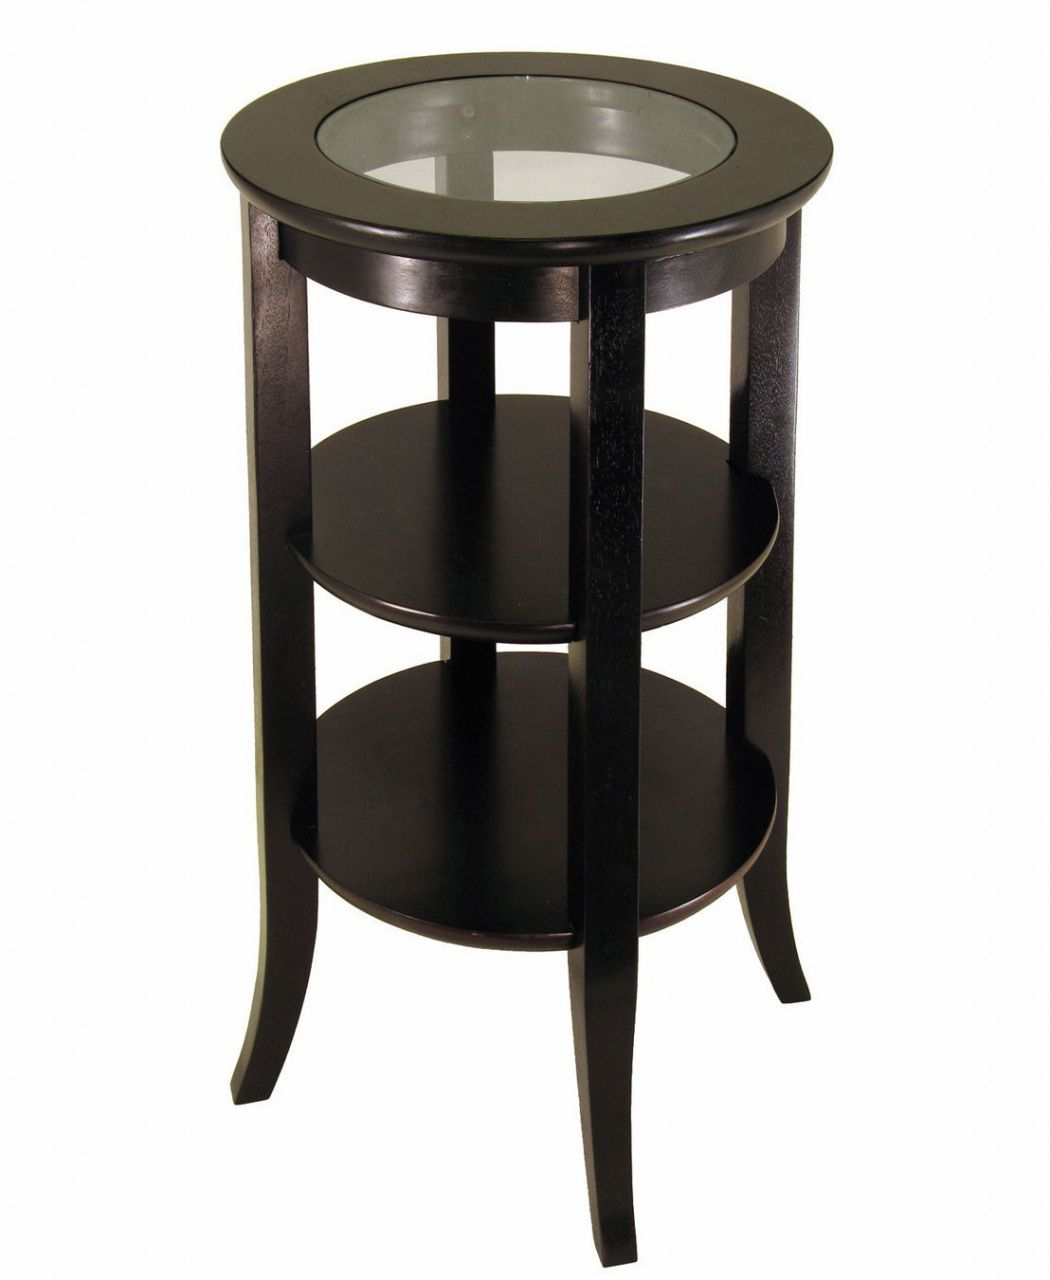 small round accent table modern european furniture check more with drawer target marble antique drop leaf pedestal home decor interior design white bar height mirror drawing grey